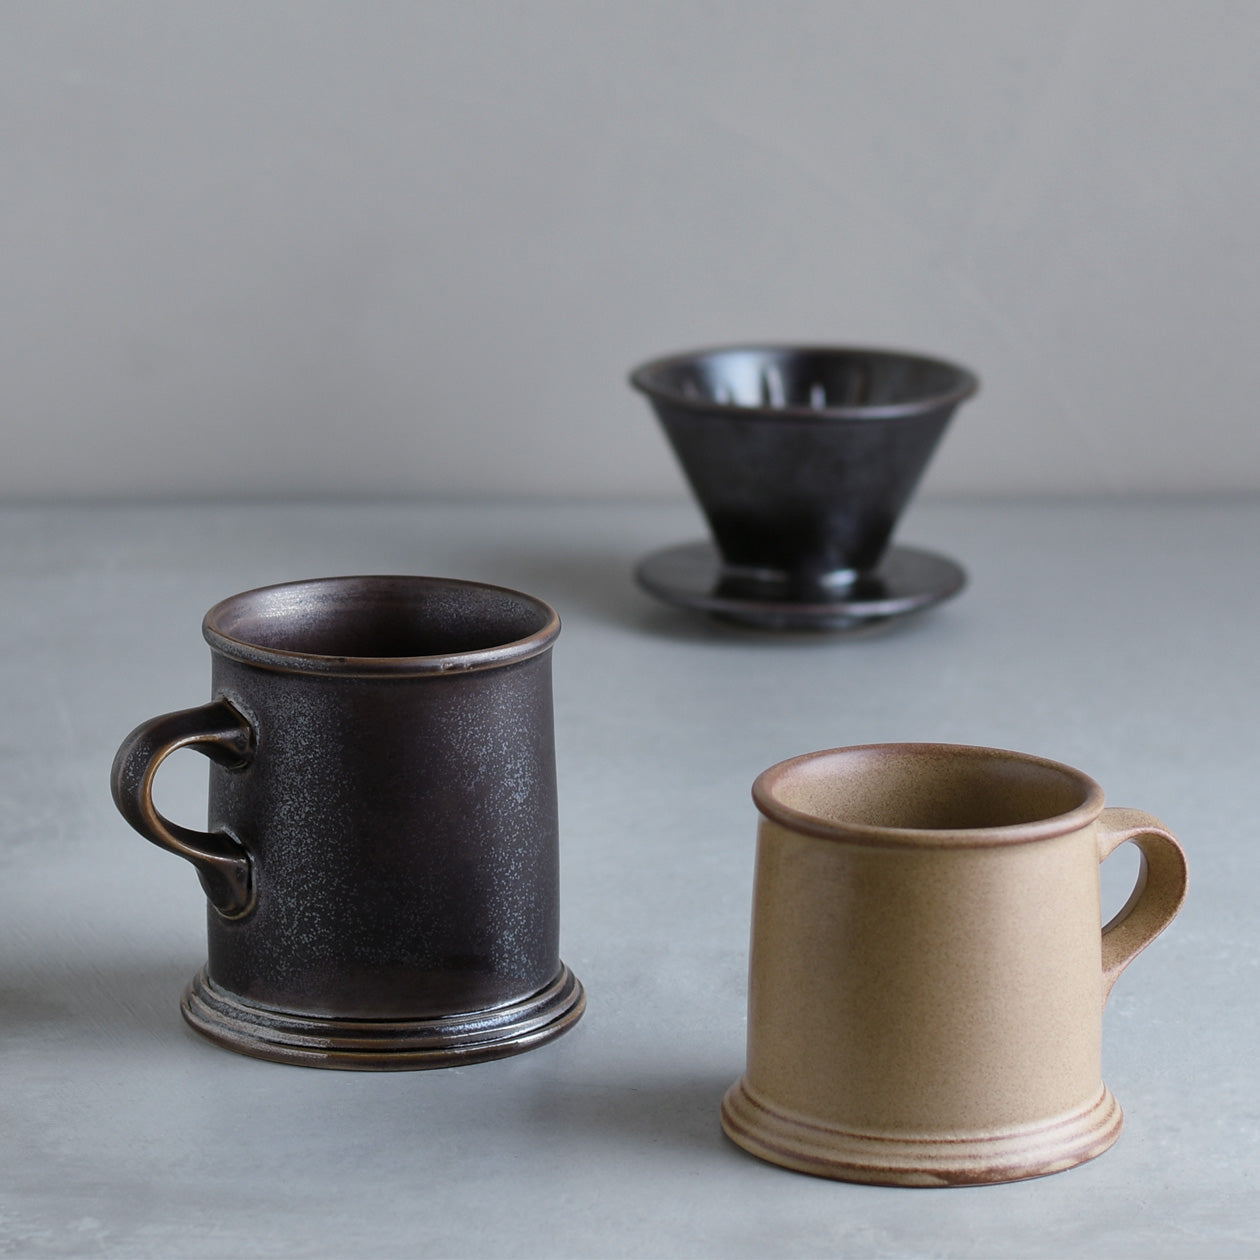 SCS-S01 Mugs and brewer